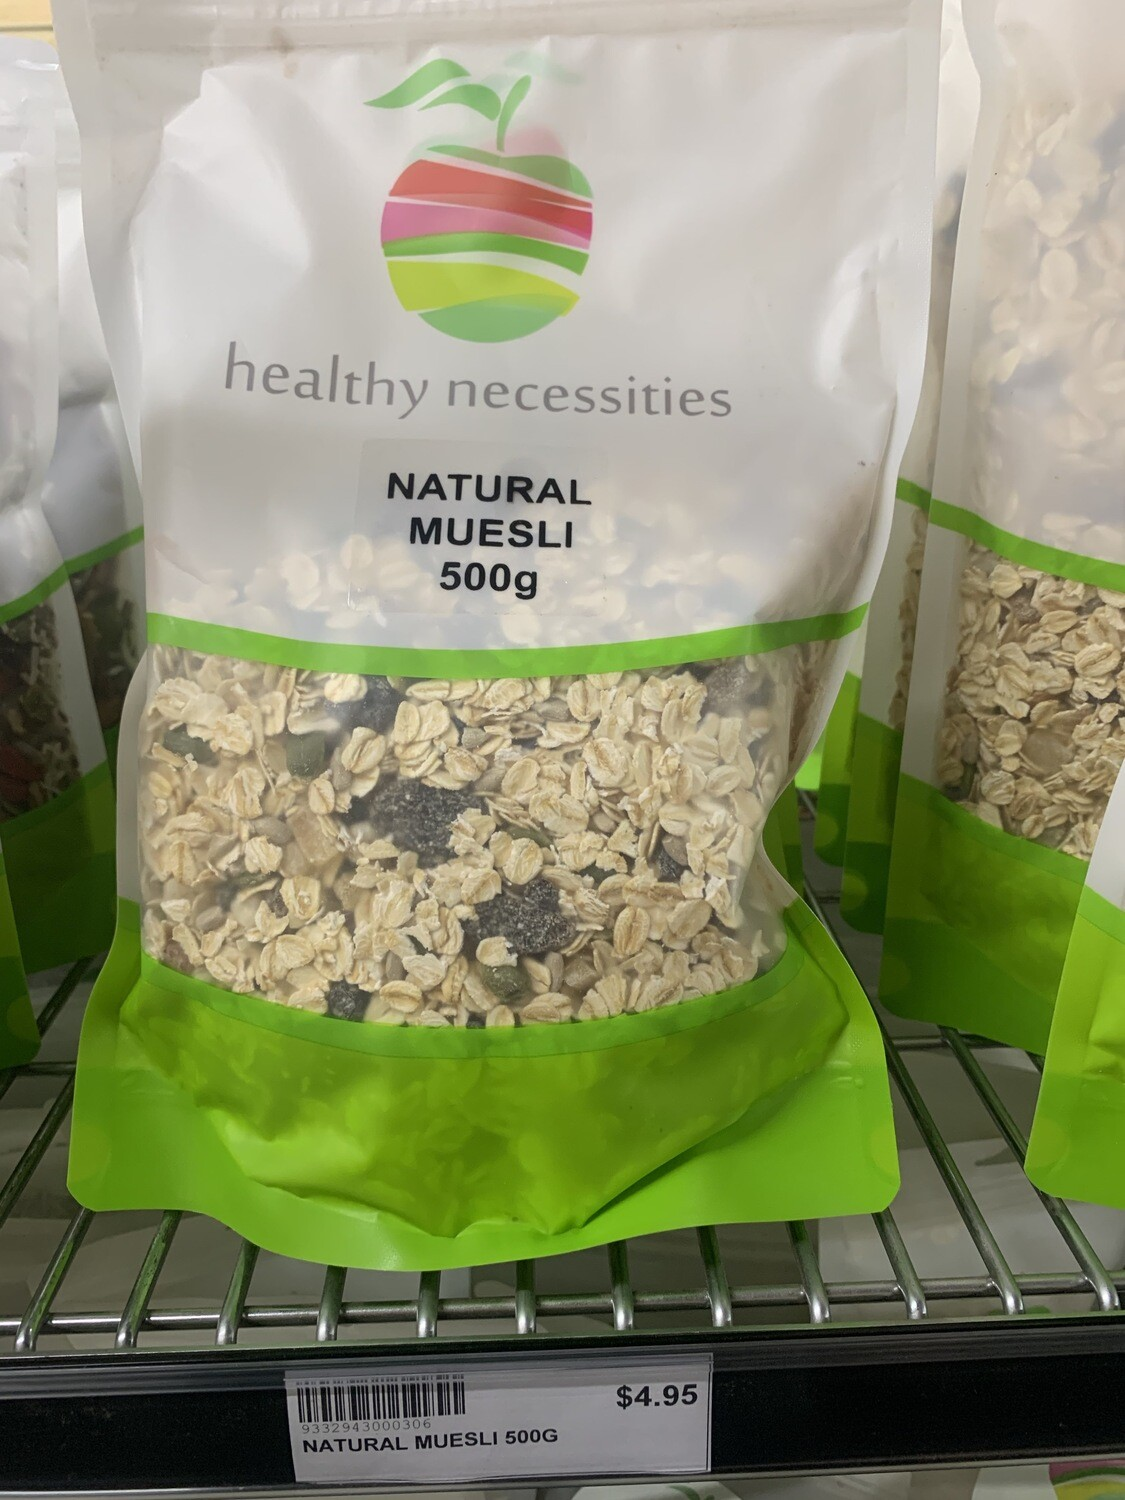 HN MUESLI - NATURAL 500G